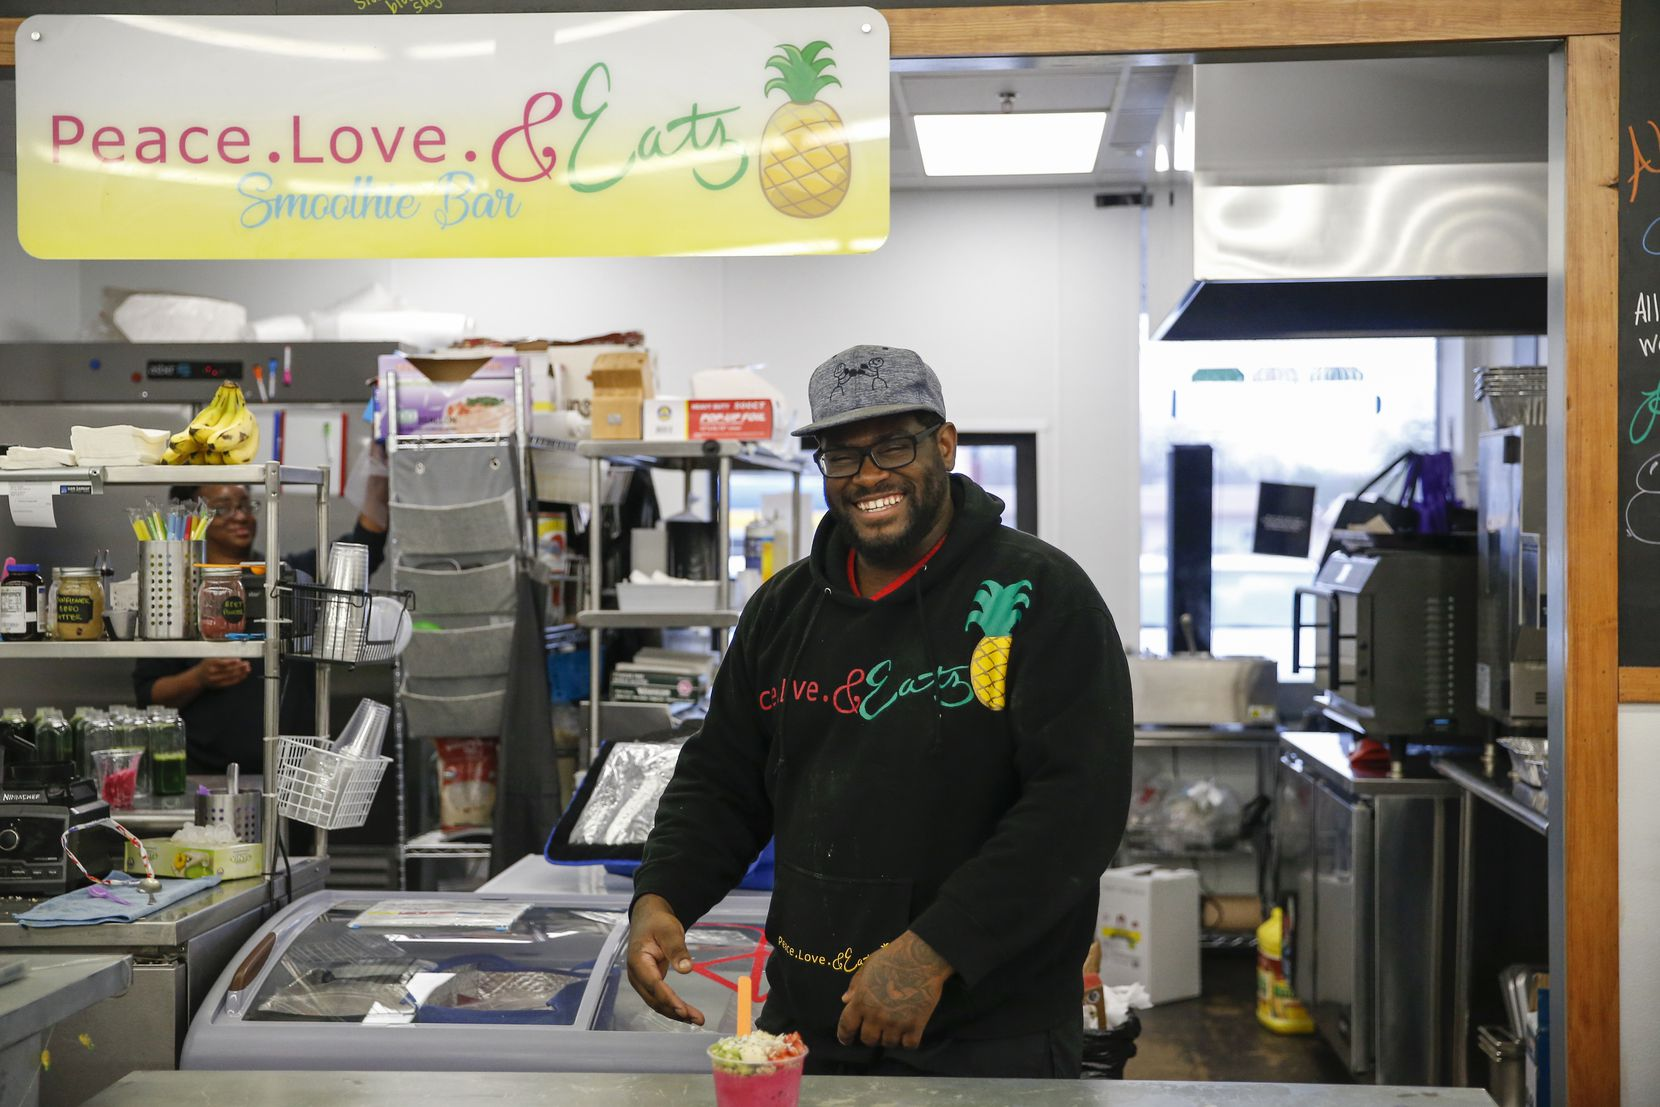 James McGee poses for a photograph at Peace Love Eatz in Grow DeSoto Marketplace on Wednesday, Jan 22, 2020 in DeSoto, Texas. (Ryan Michalesko/The Dallas Morning News)